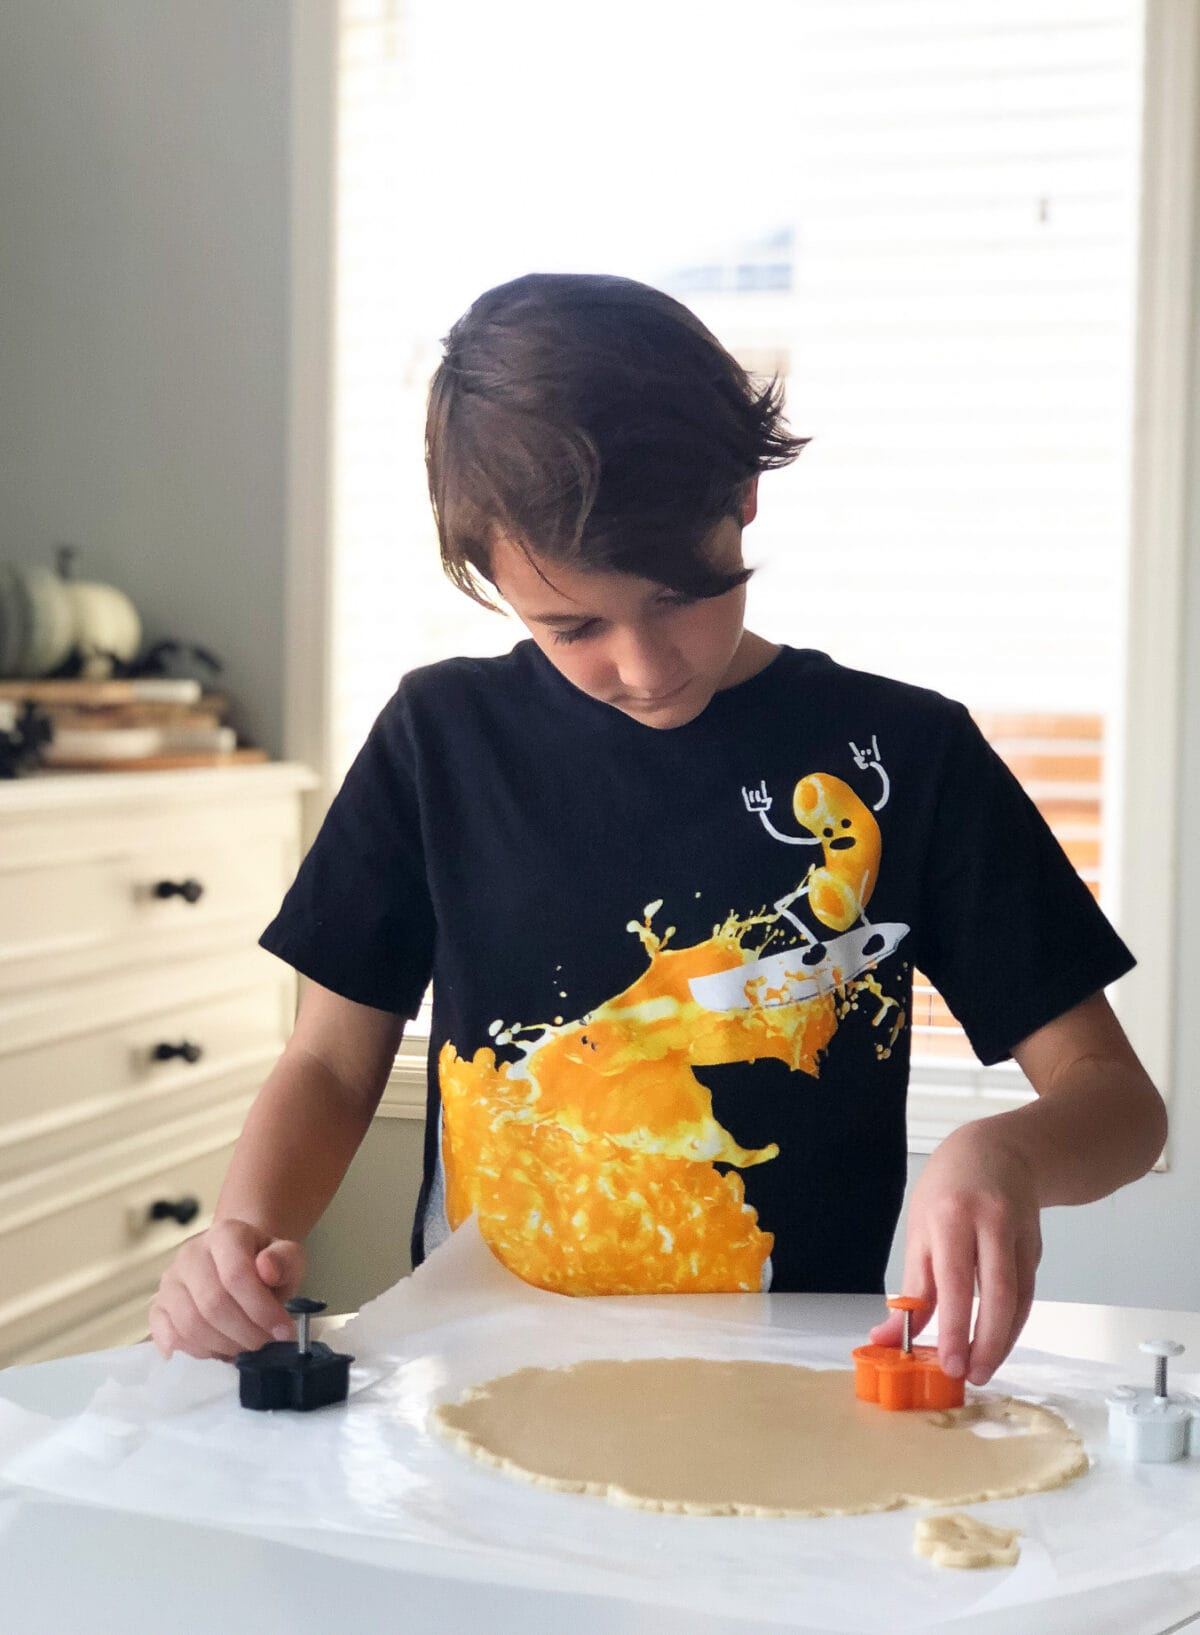 A little boy using a cookie stamp to cut out sugar cookie